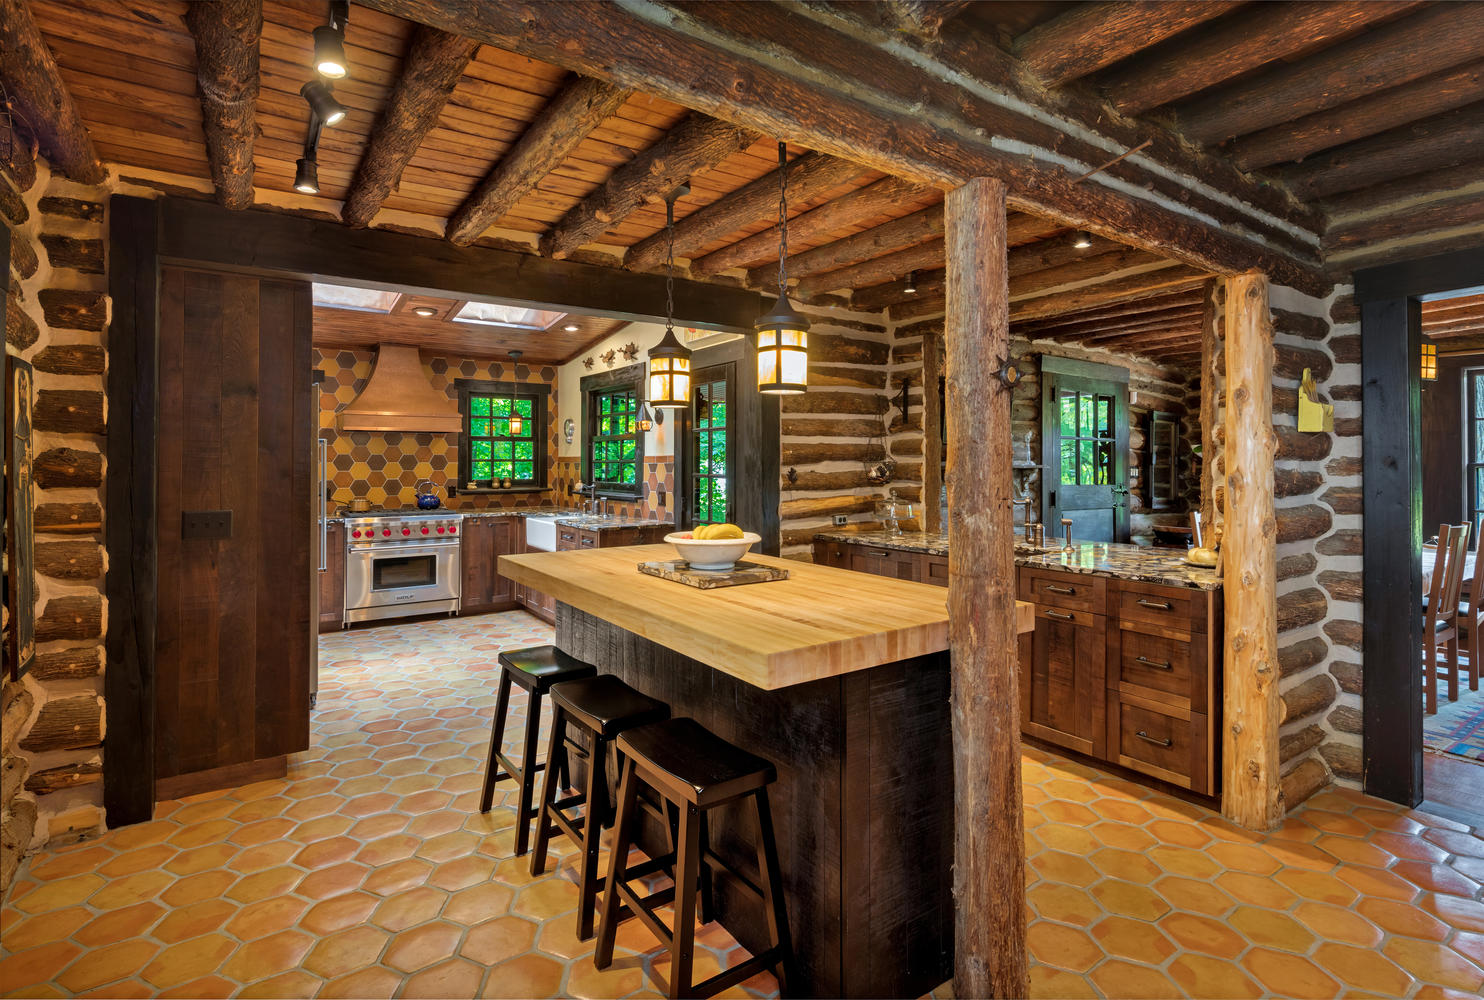 Rustic Barn Wood Kitchen Interlaken New Jersey by Design